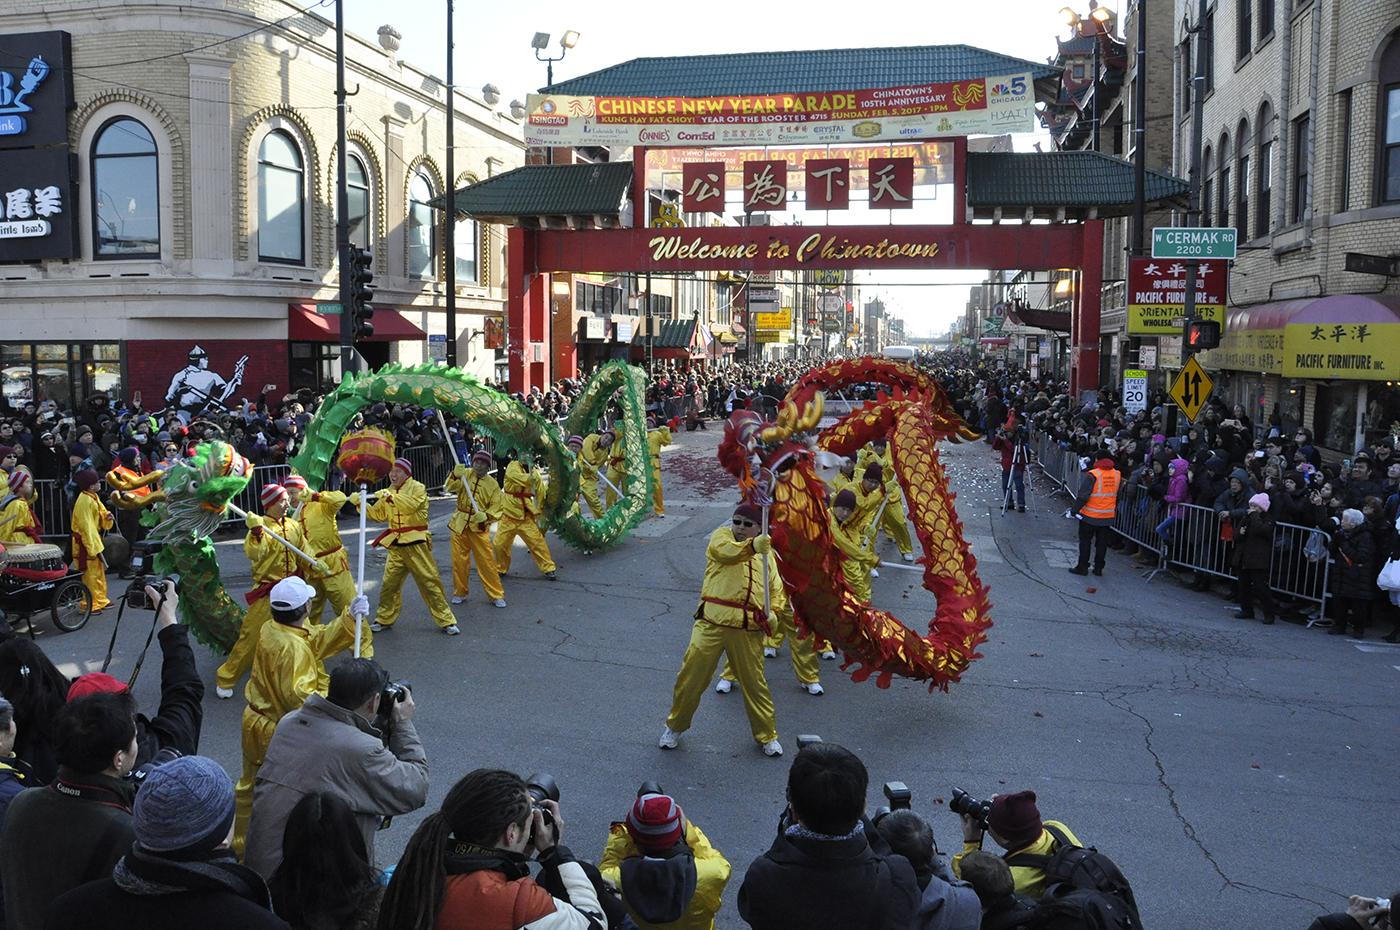 A Chinese New Year parade in Chicago's Chinatown. Courtesy: Chicago Chinatown Chamber of Commerce and Special Events